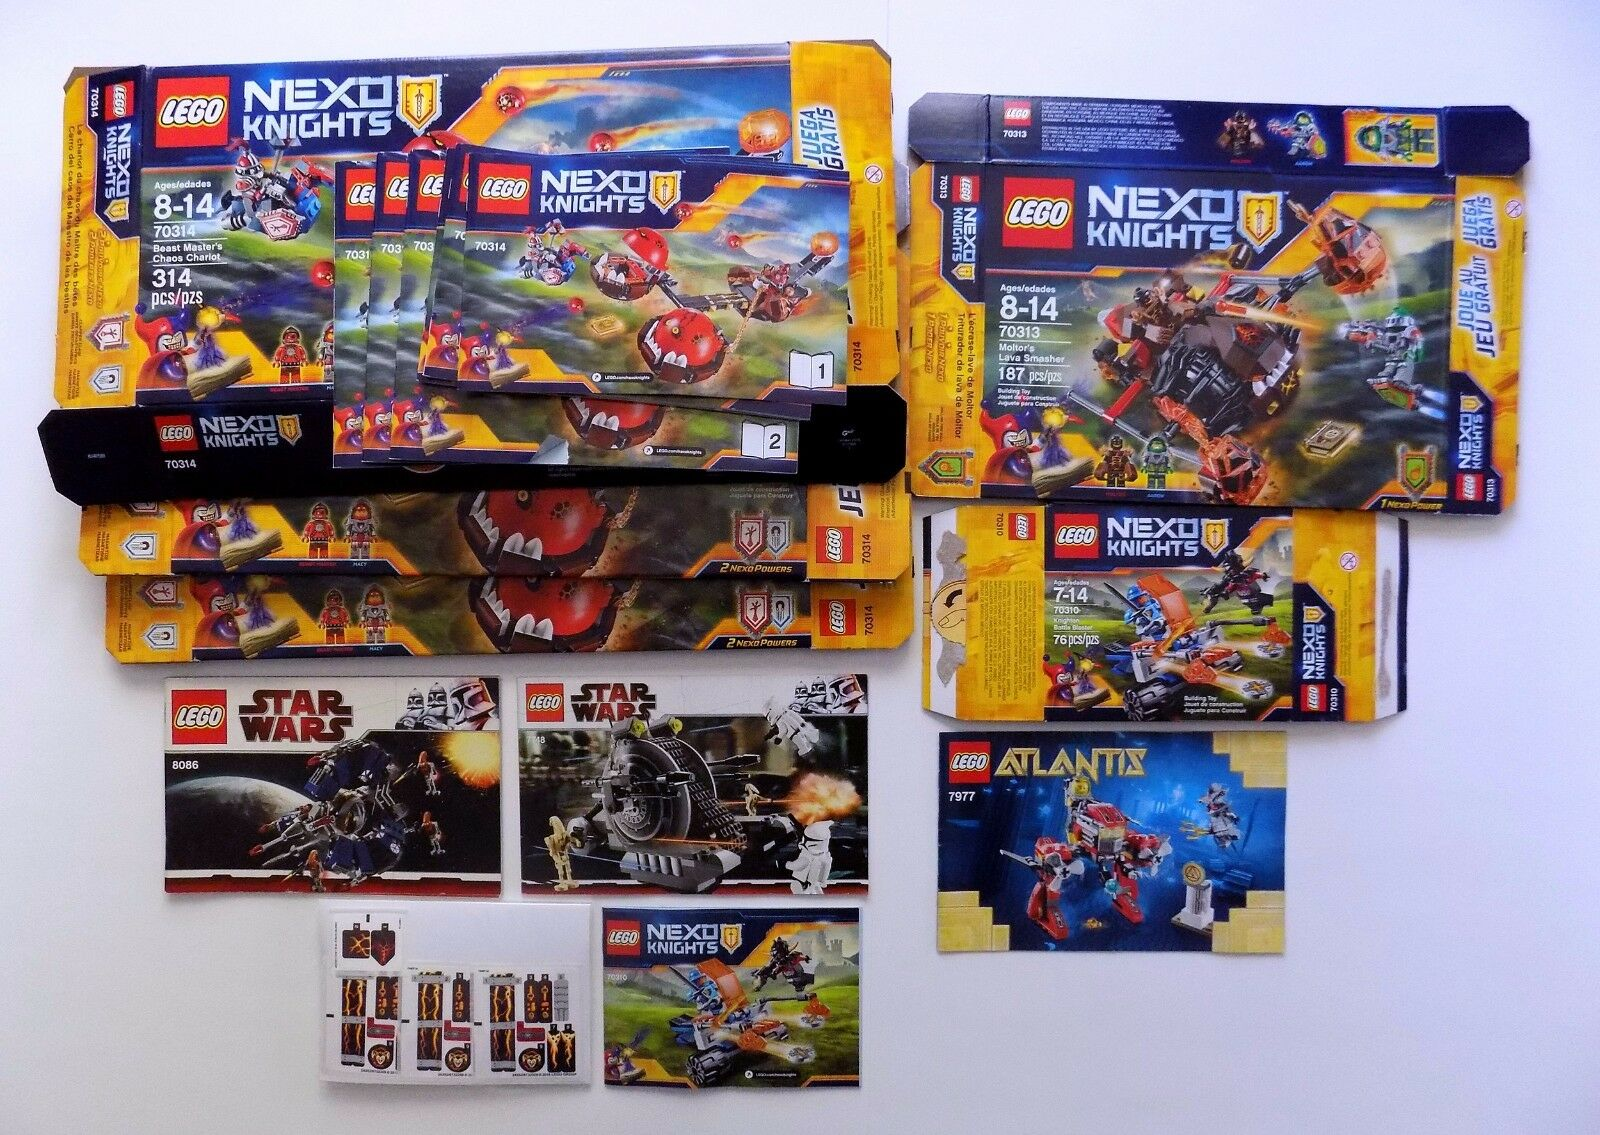 8 Lego Sets, 1799 Pieces 24 MINIFIGS. Star Wars, Nexo Knights, Classic Knights